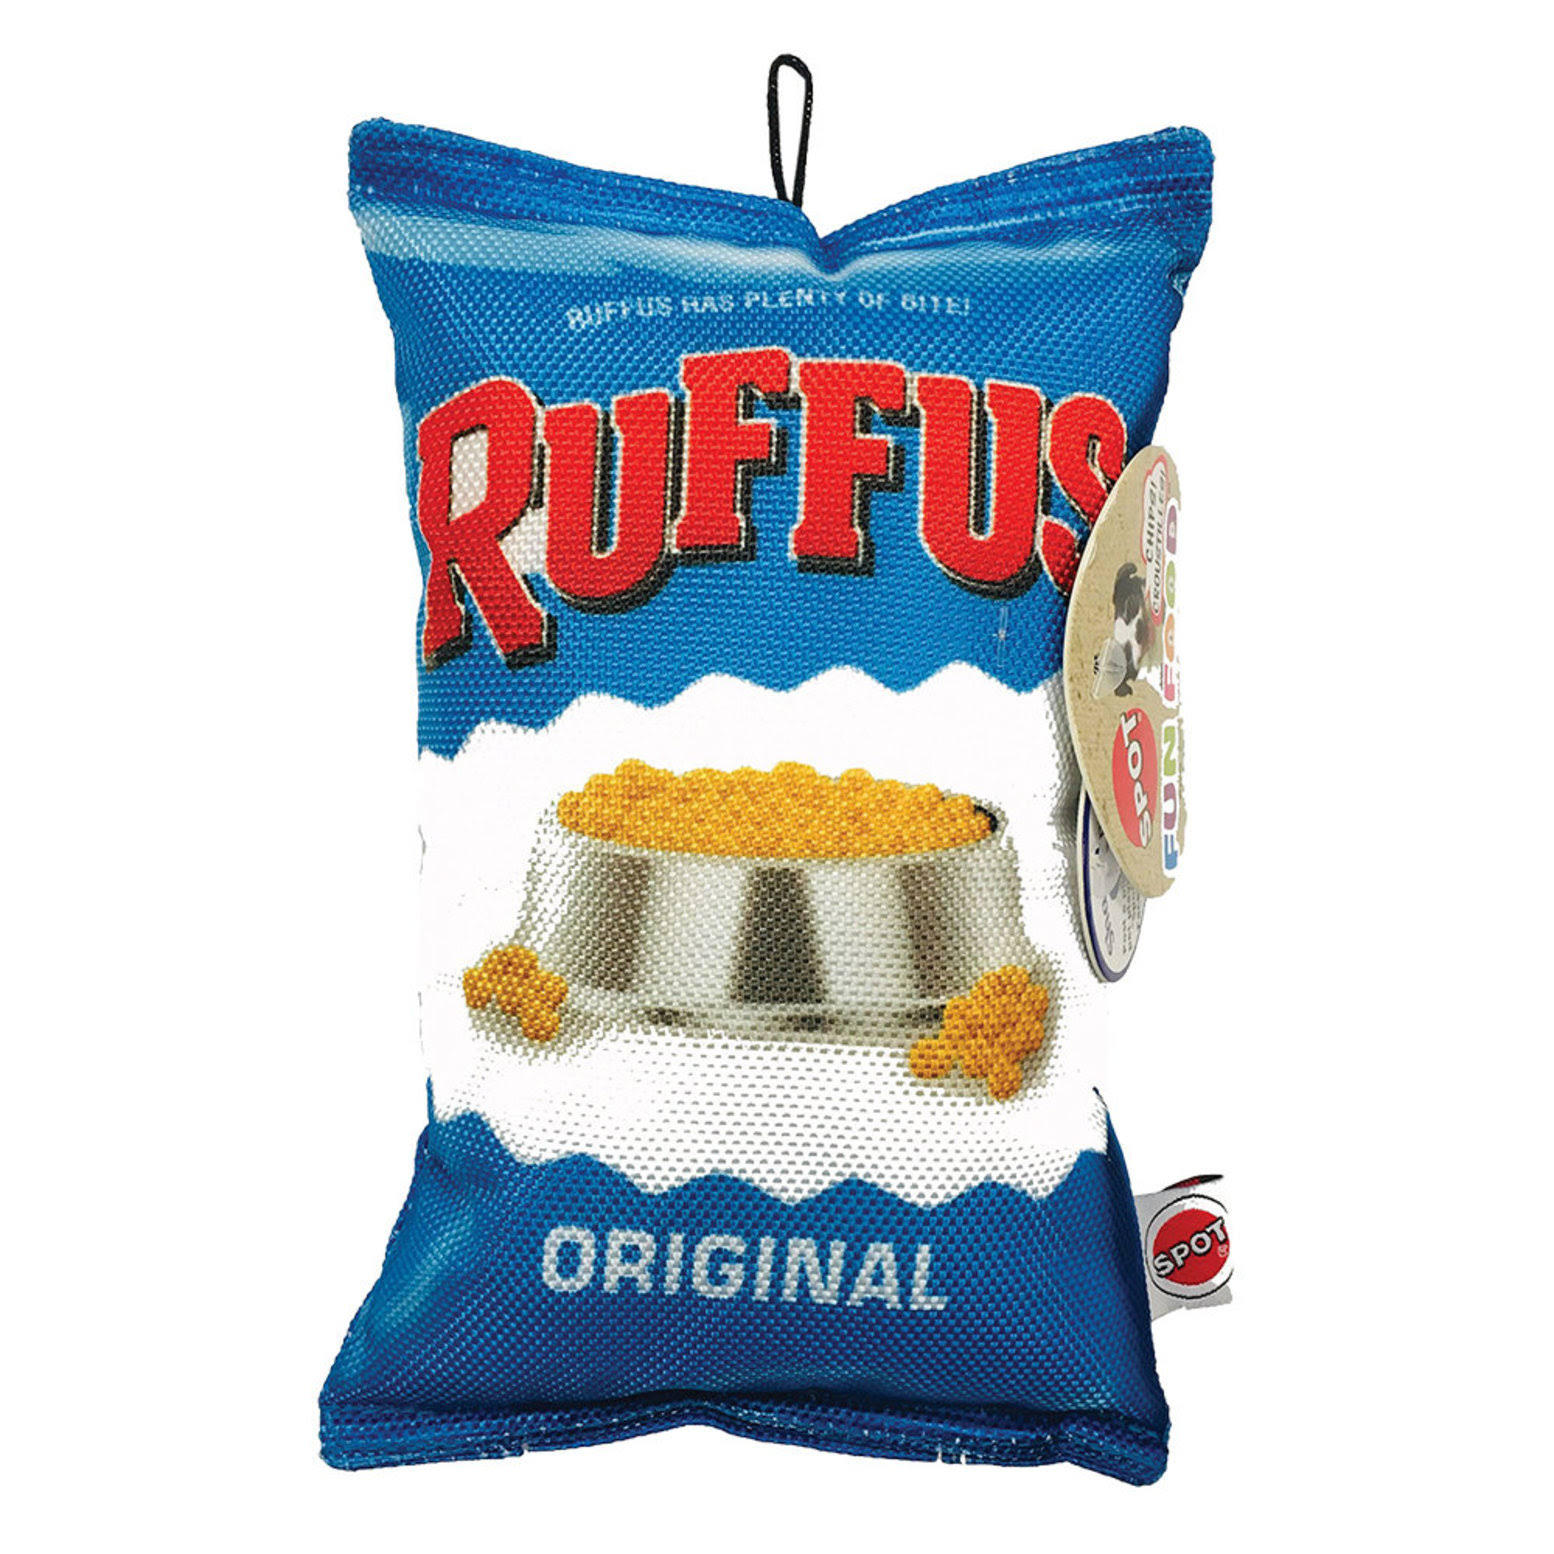 Ethical Pet Fun Food Ruffus Chips Dog Toy, 8-in